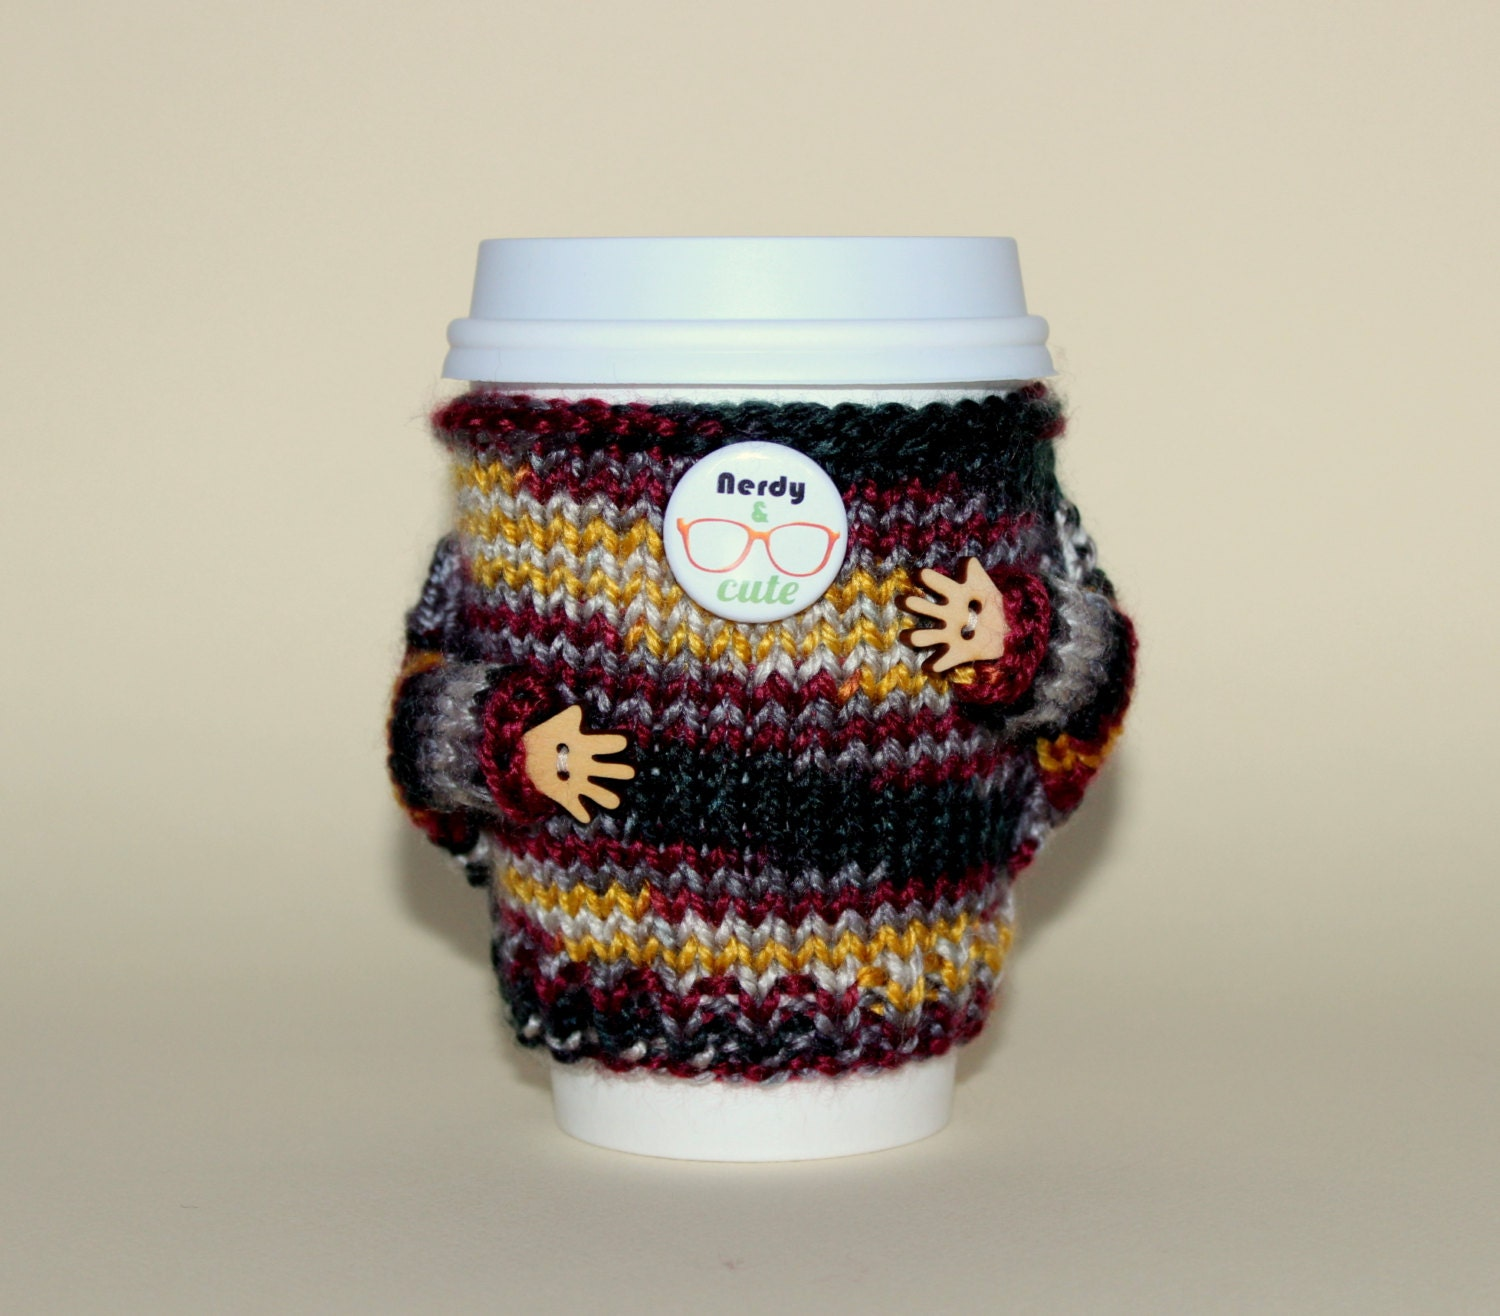 Nerdy Coffee cozy. Travel mug cozy. Knitted cup sweater.